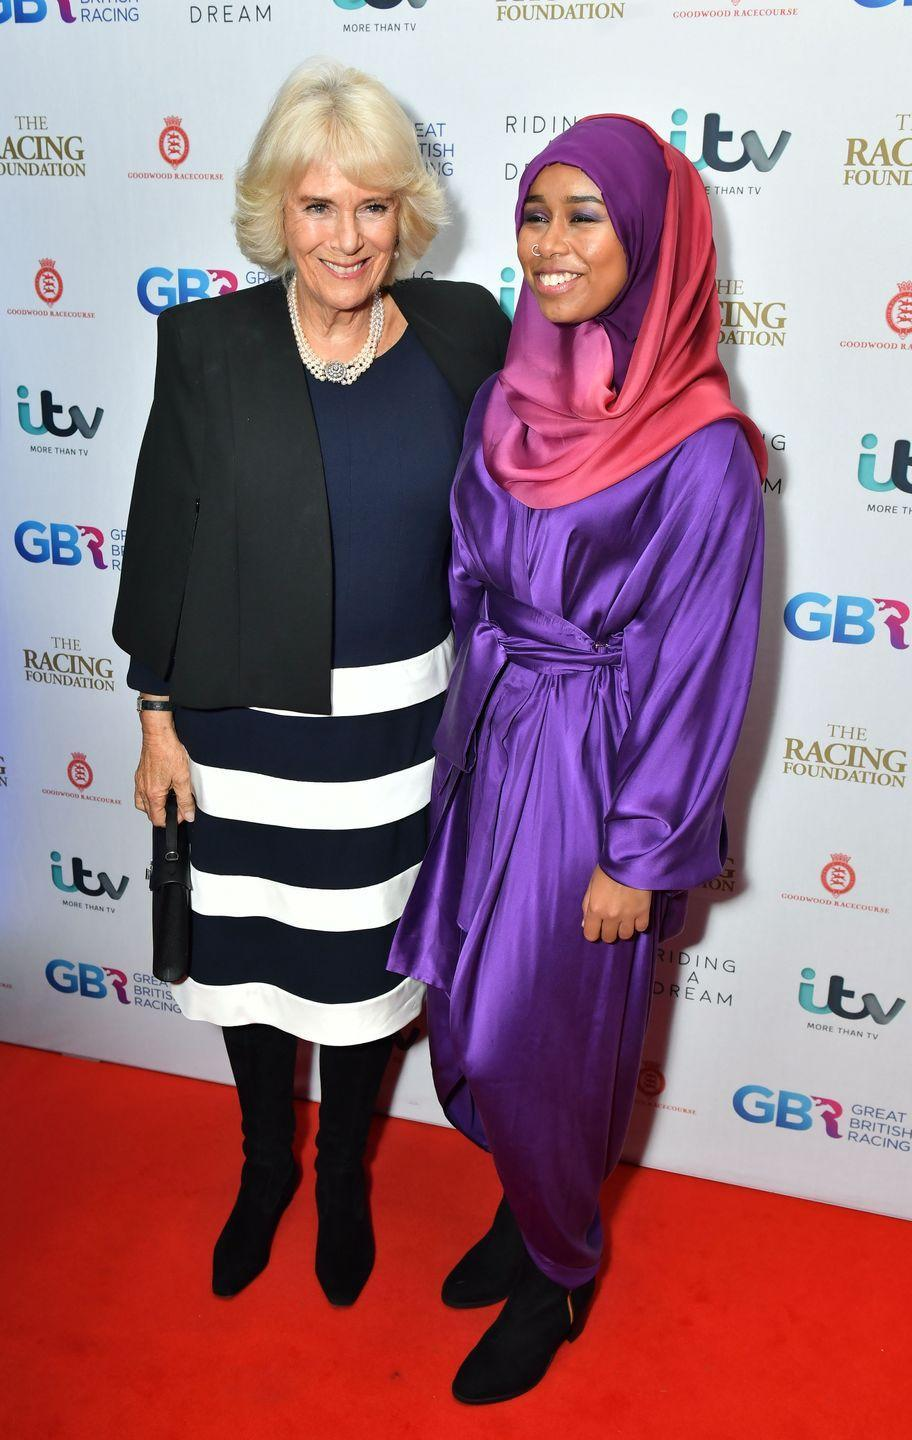 <p>Camilla, Duchess of Cornwall sported a black and white striped skirt while meeting with jockey Khadijah Mellah in London. </p>